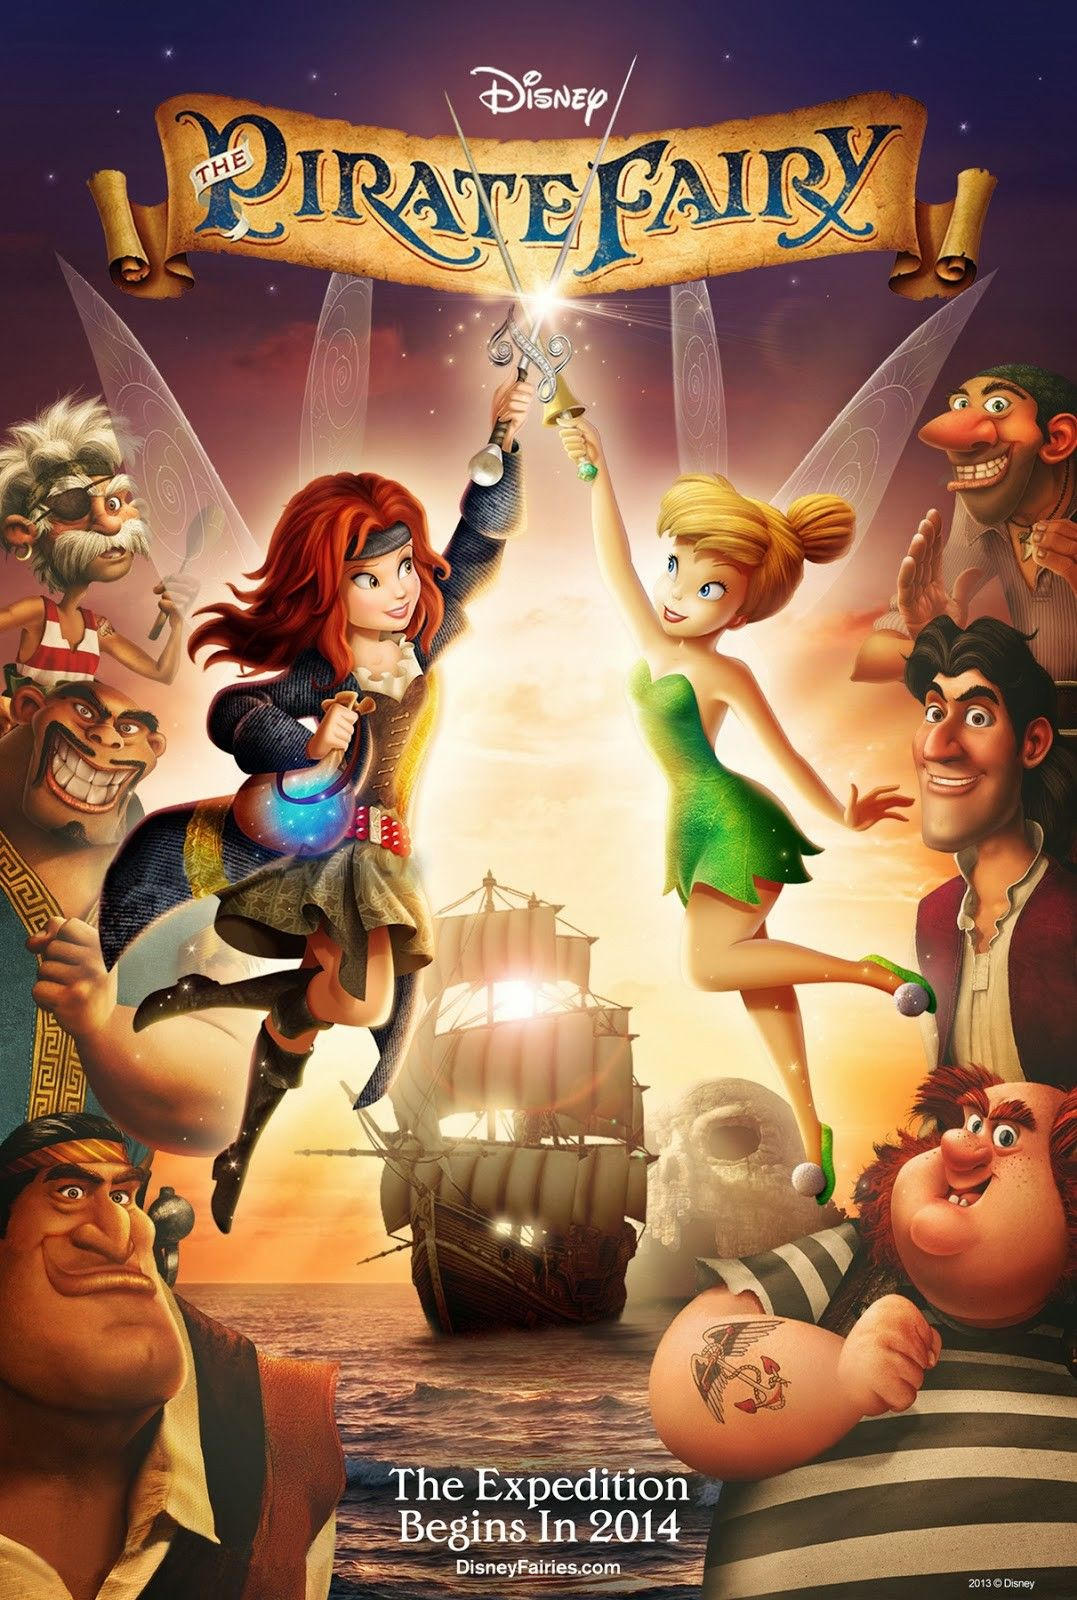 The Pirate Fairy Movie Posters Photos Childhood Animated Heroines Tinkerbell